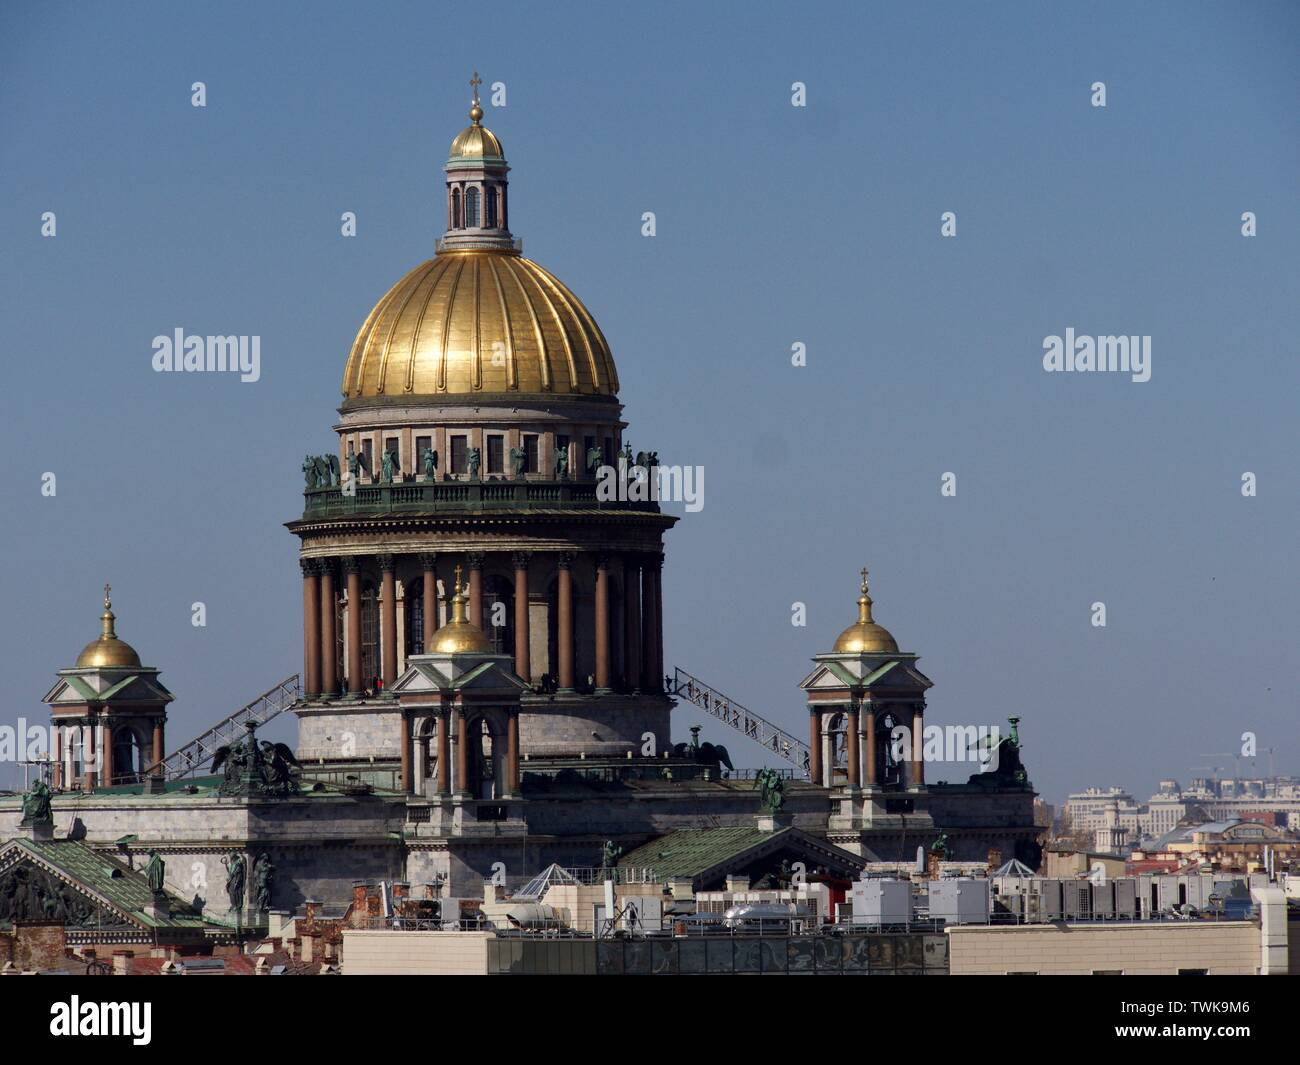 PETERSBURG, St Isaac's Square It is one of the main city famouse place St Isaac's Cathedral, is near Nevsky Prospect - Stock Image